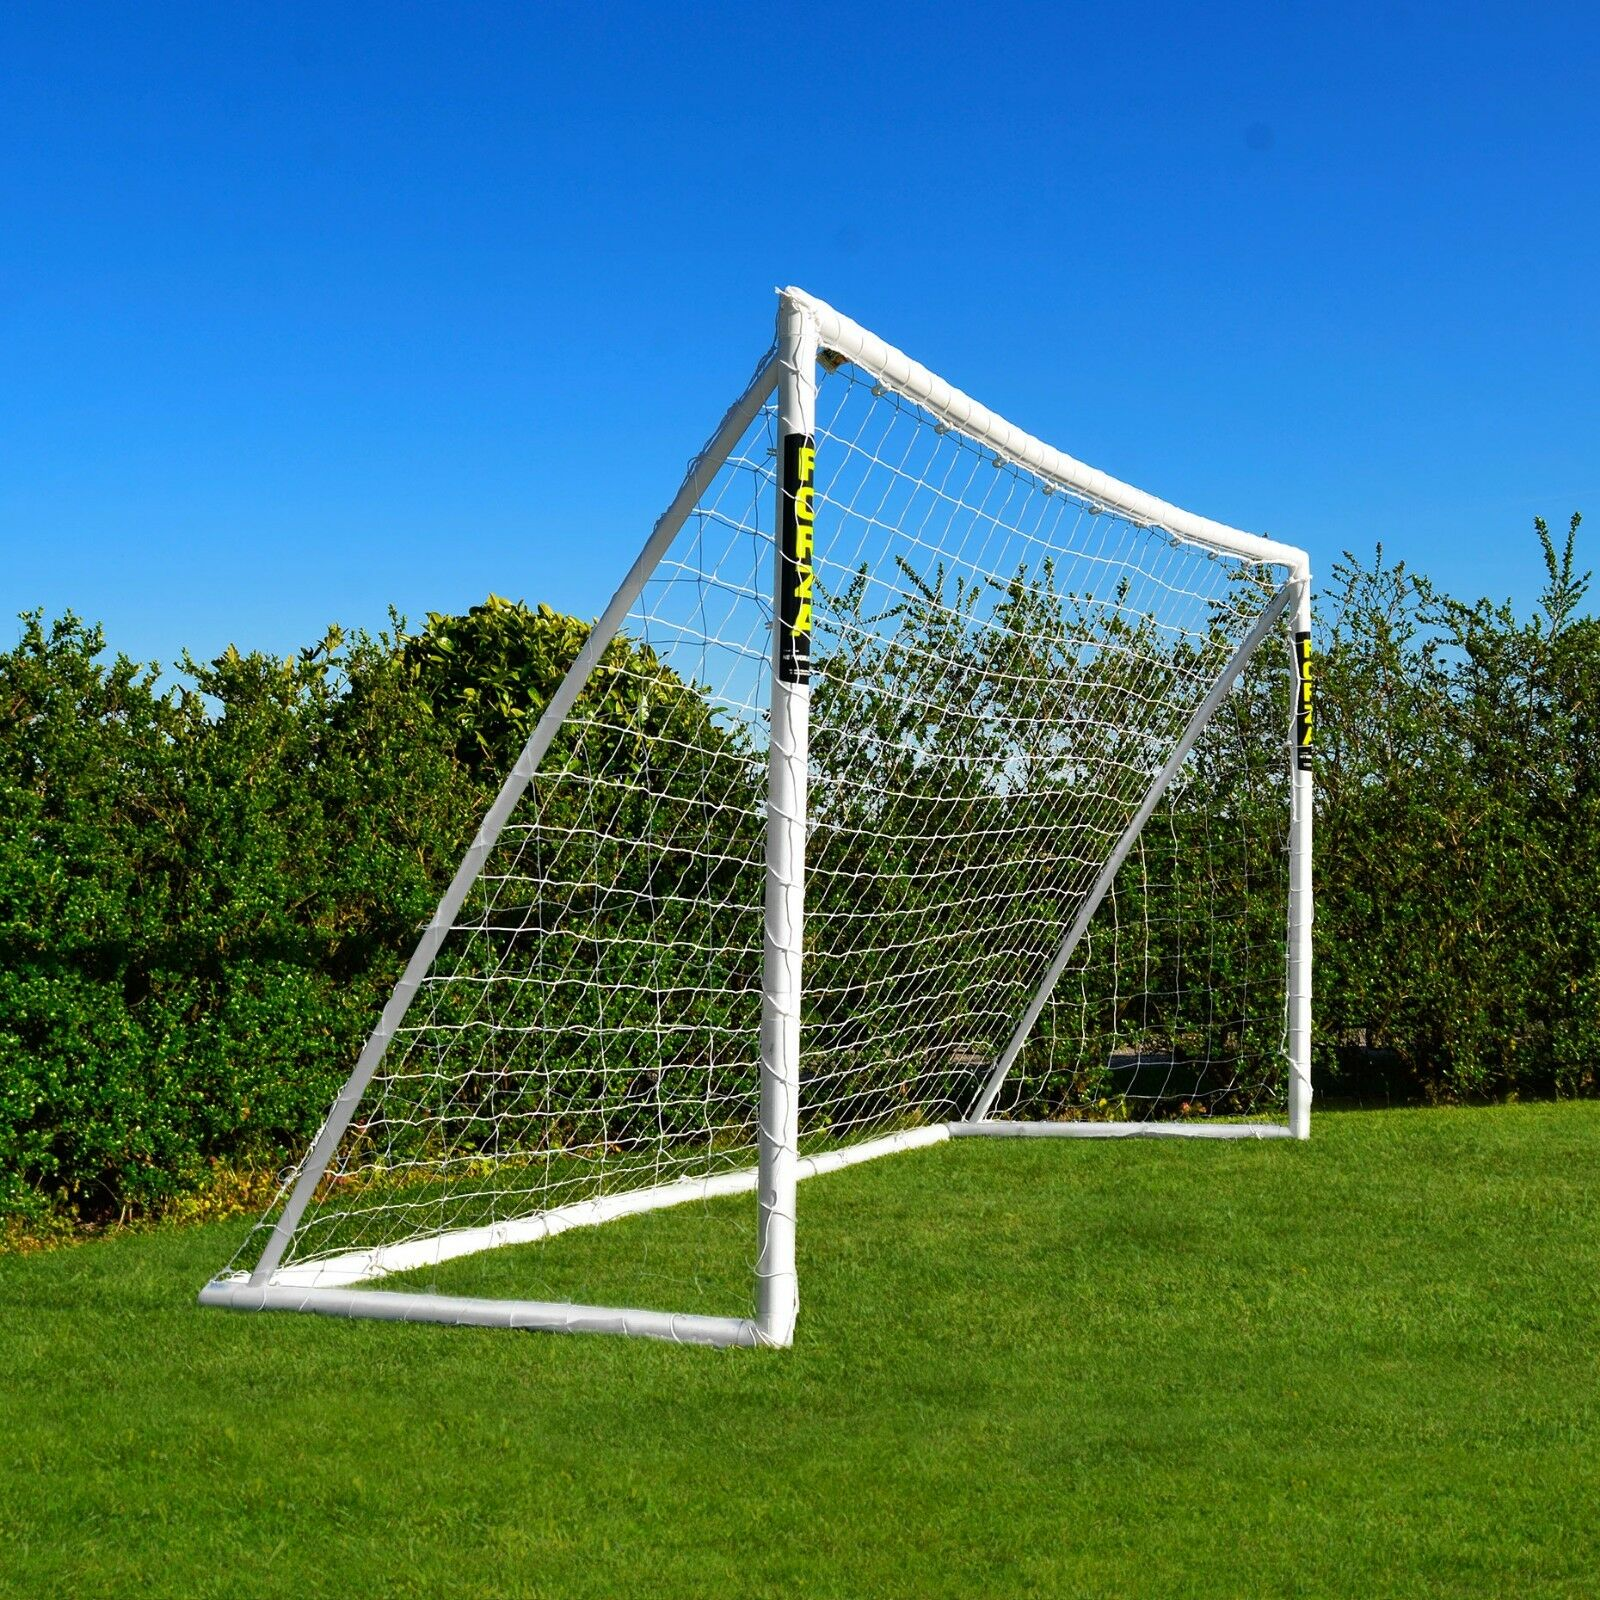 FORZA 3,7m de x 1,8m But de 3,7m Foot uPVC de jardin pour enfants [Net World Sports] 541652